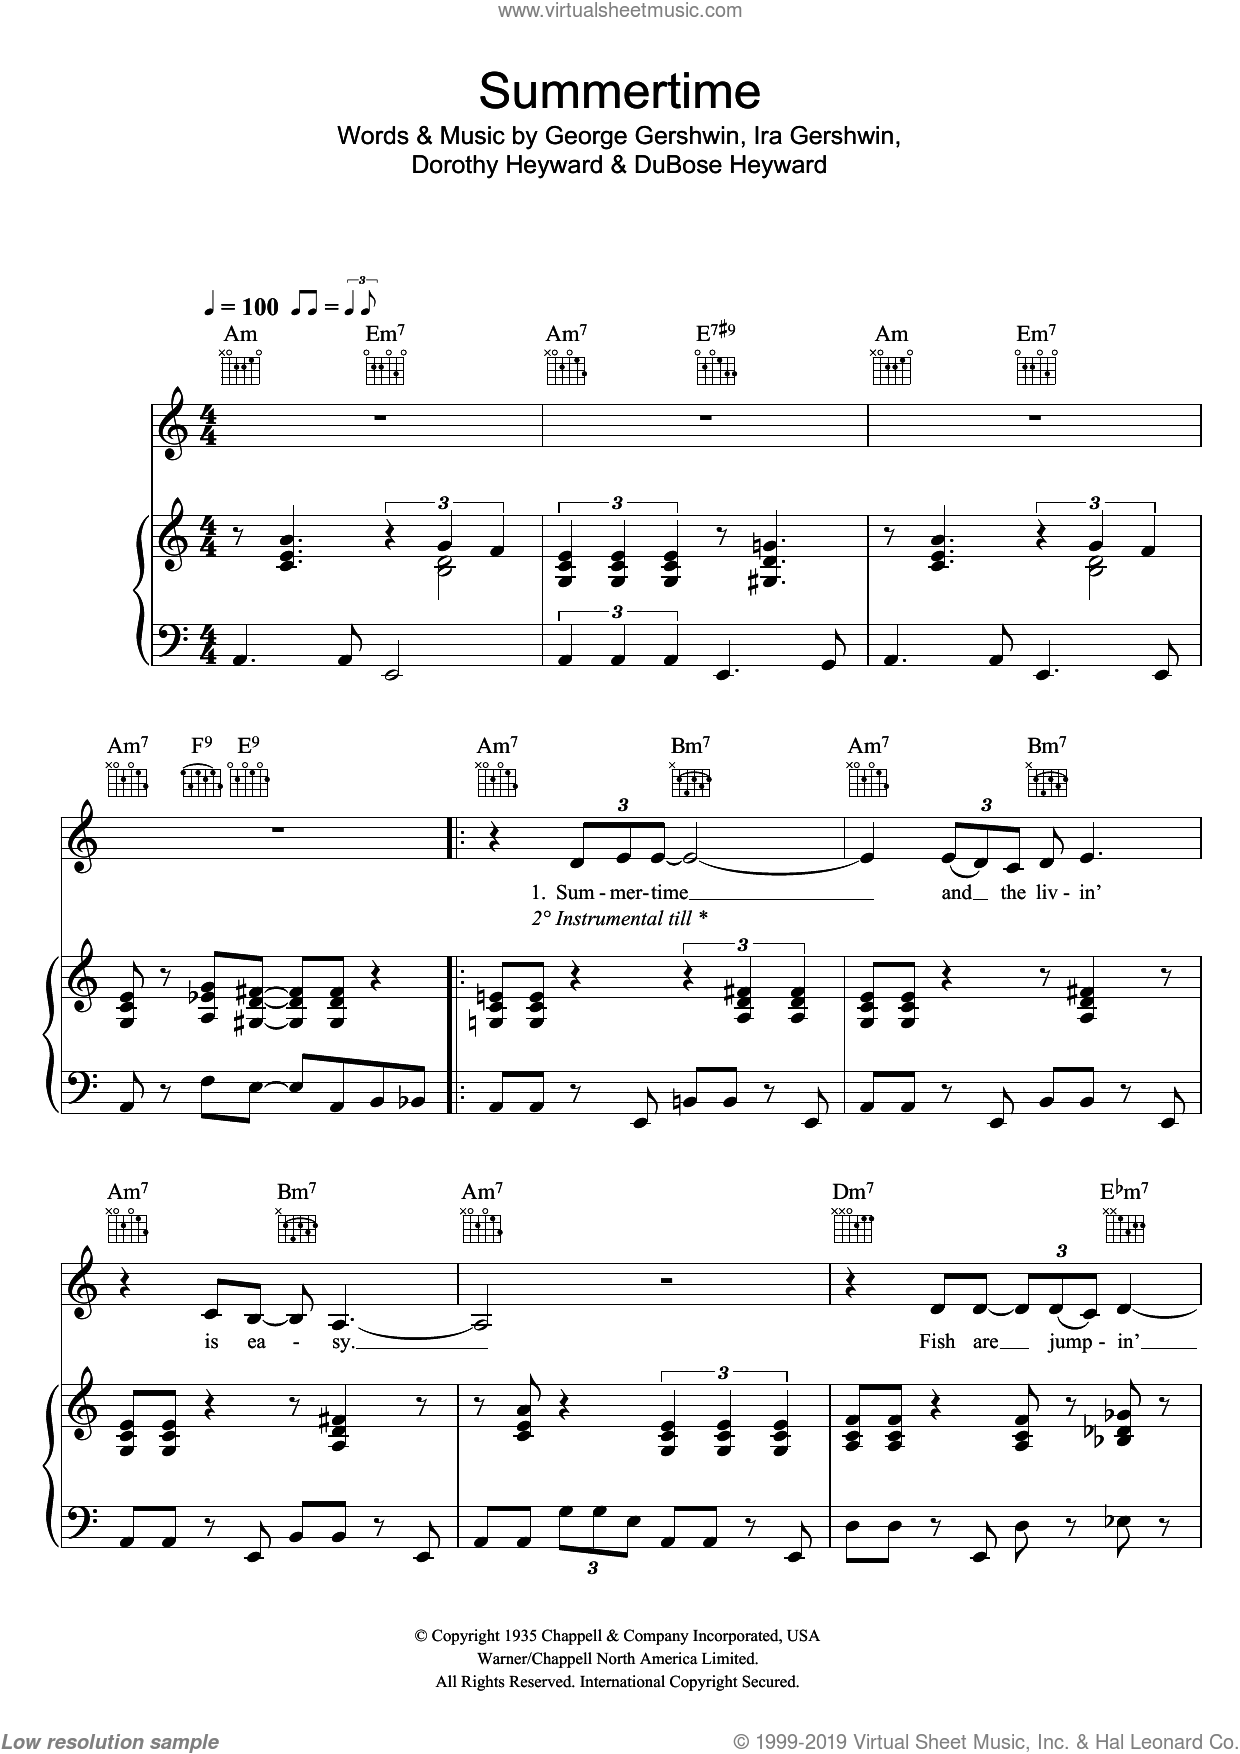 Summertime sheet music for voice, piano or guitar by Ira Gershwin